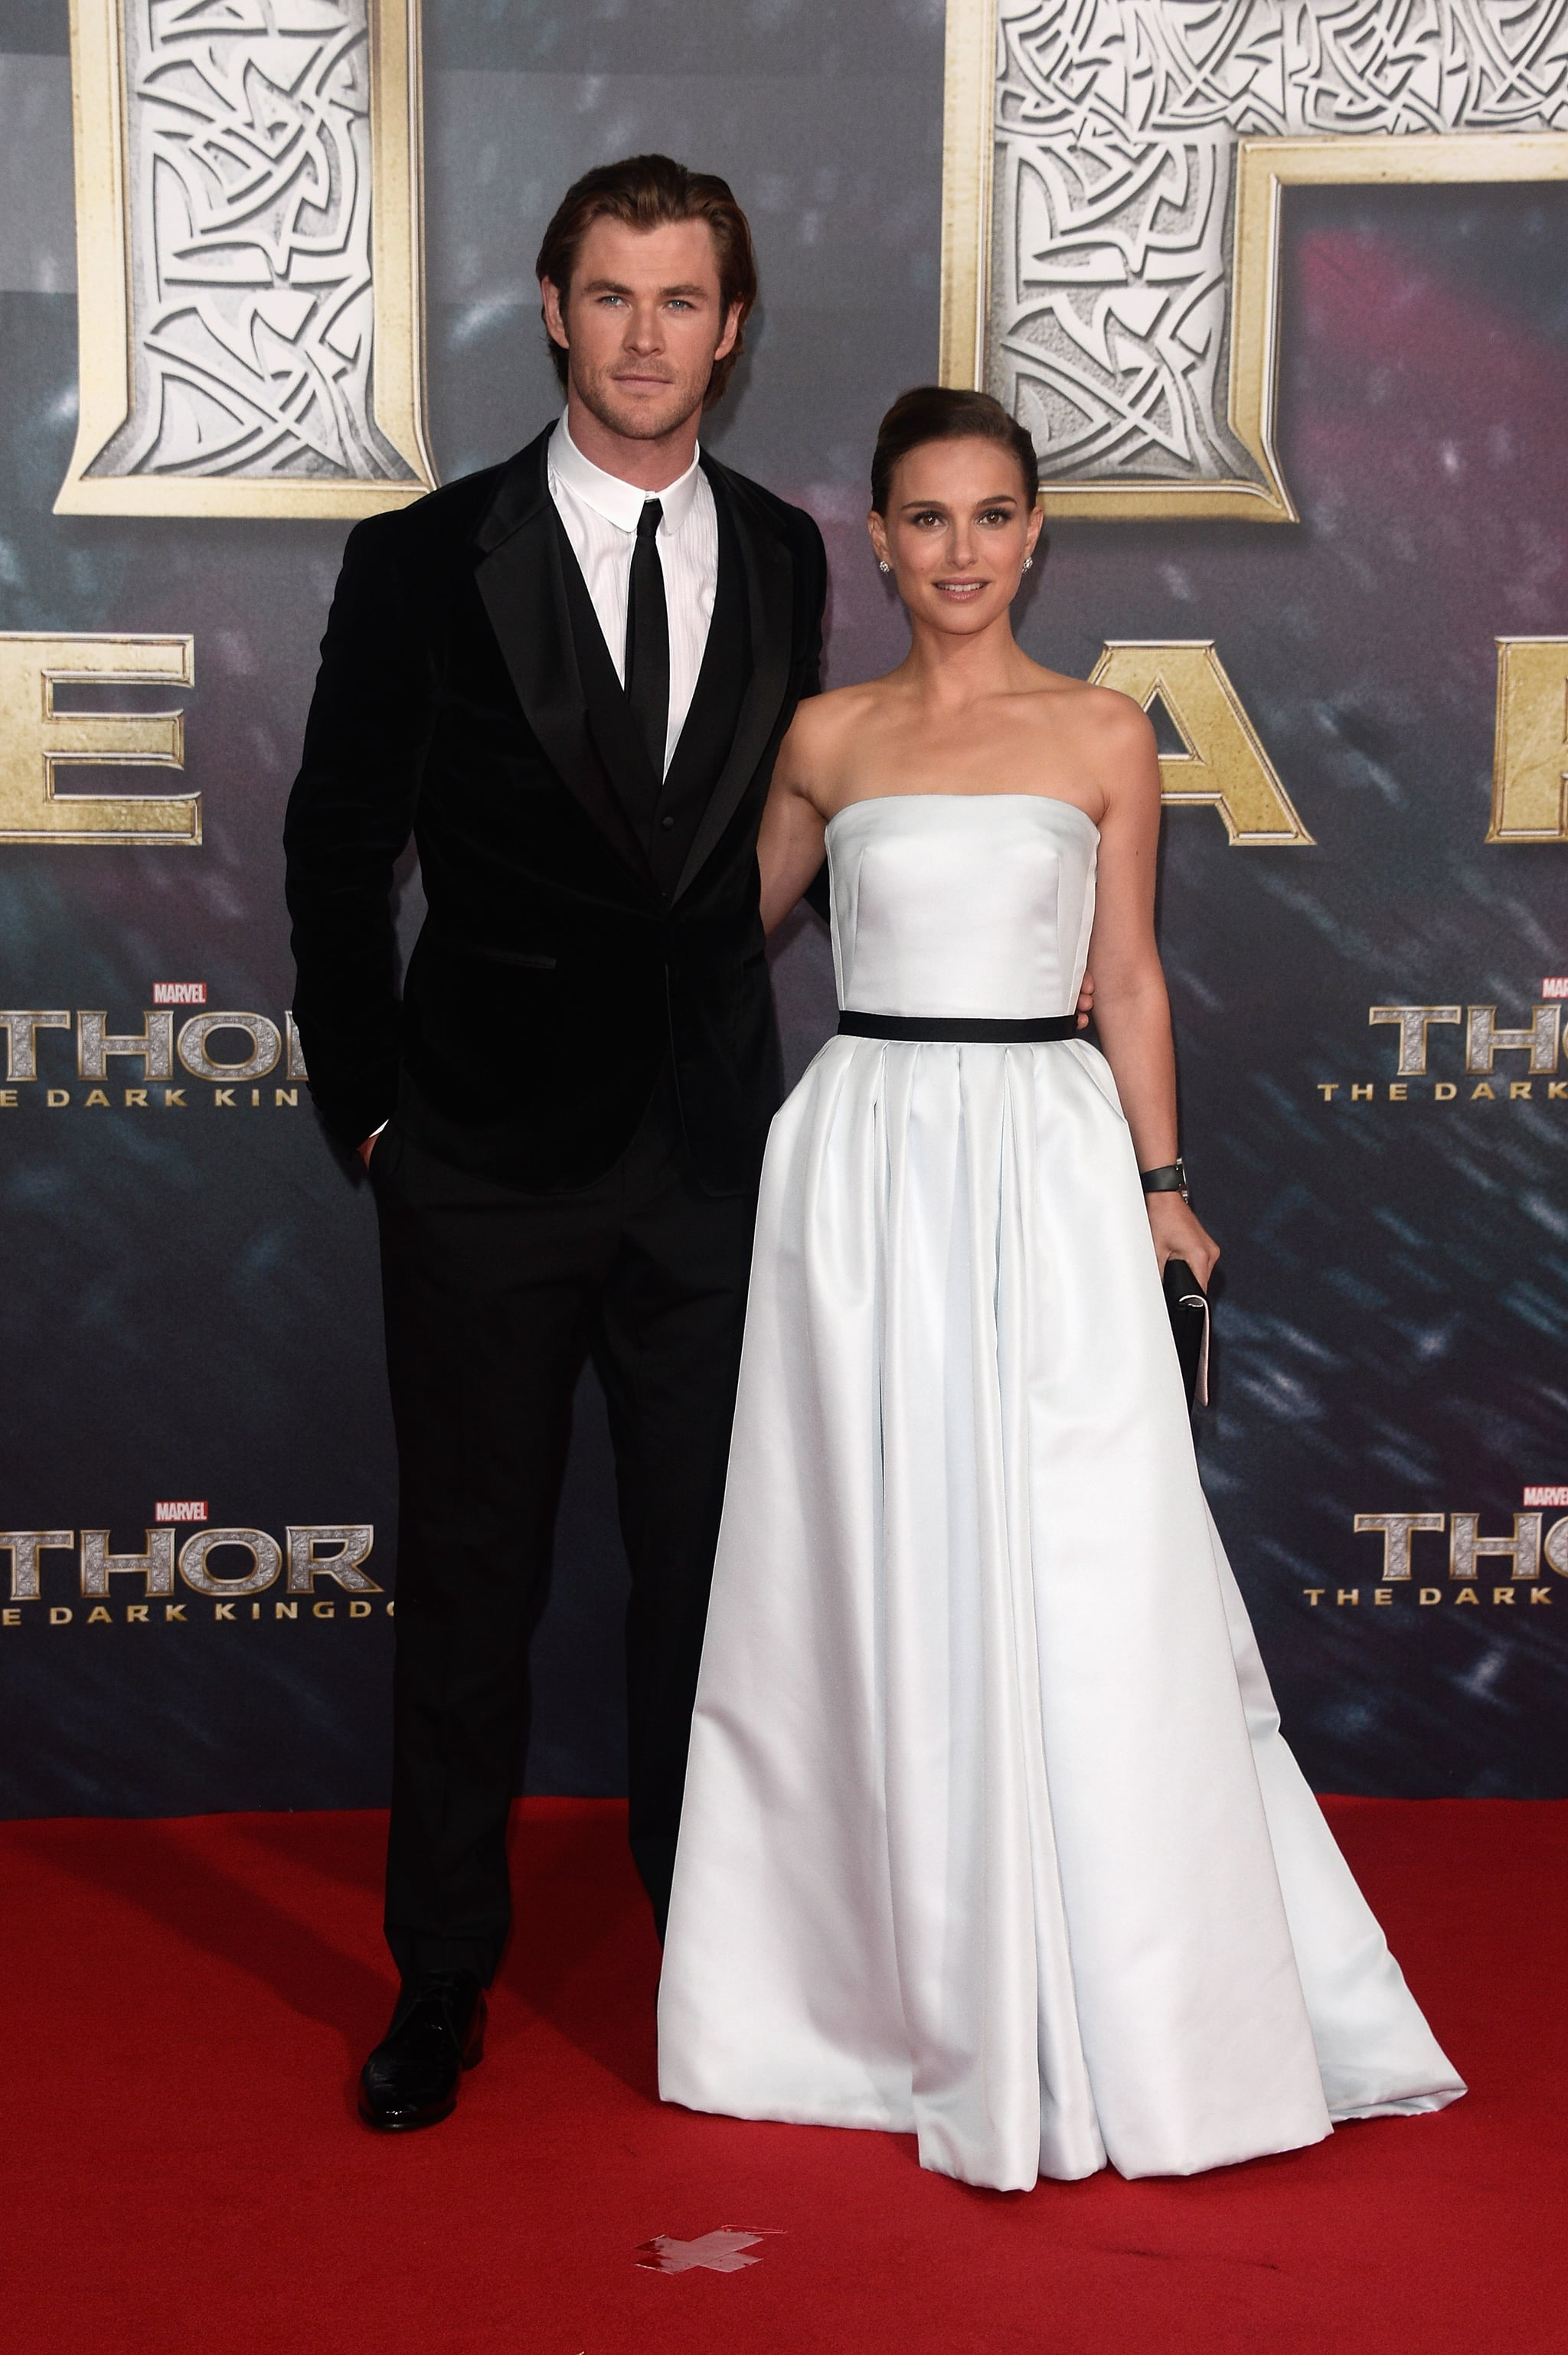 Natalie Portman and Chris Hemsworth attended the premiere for Thor: The Dark World.